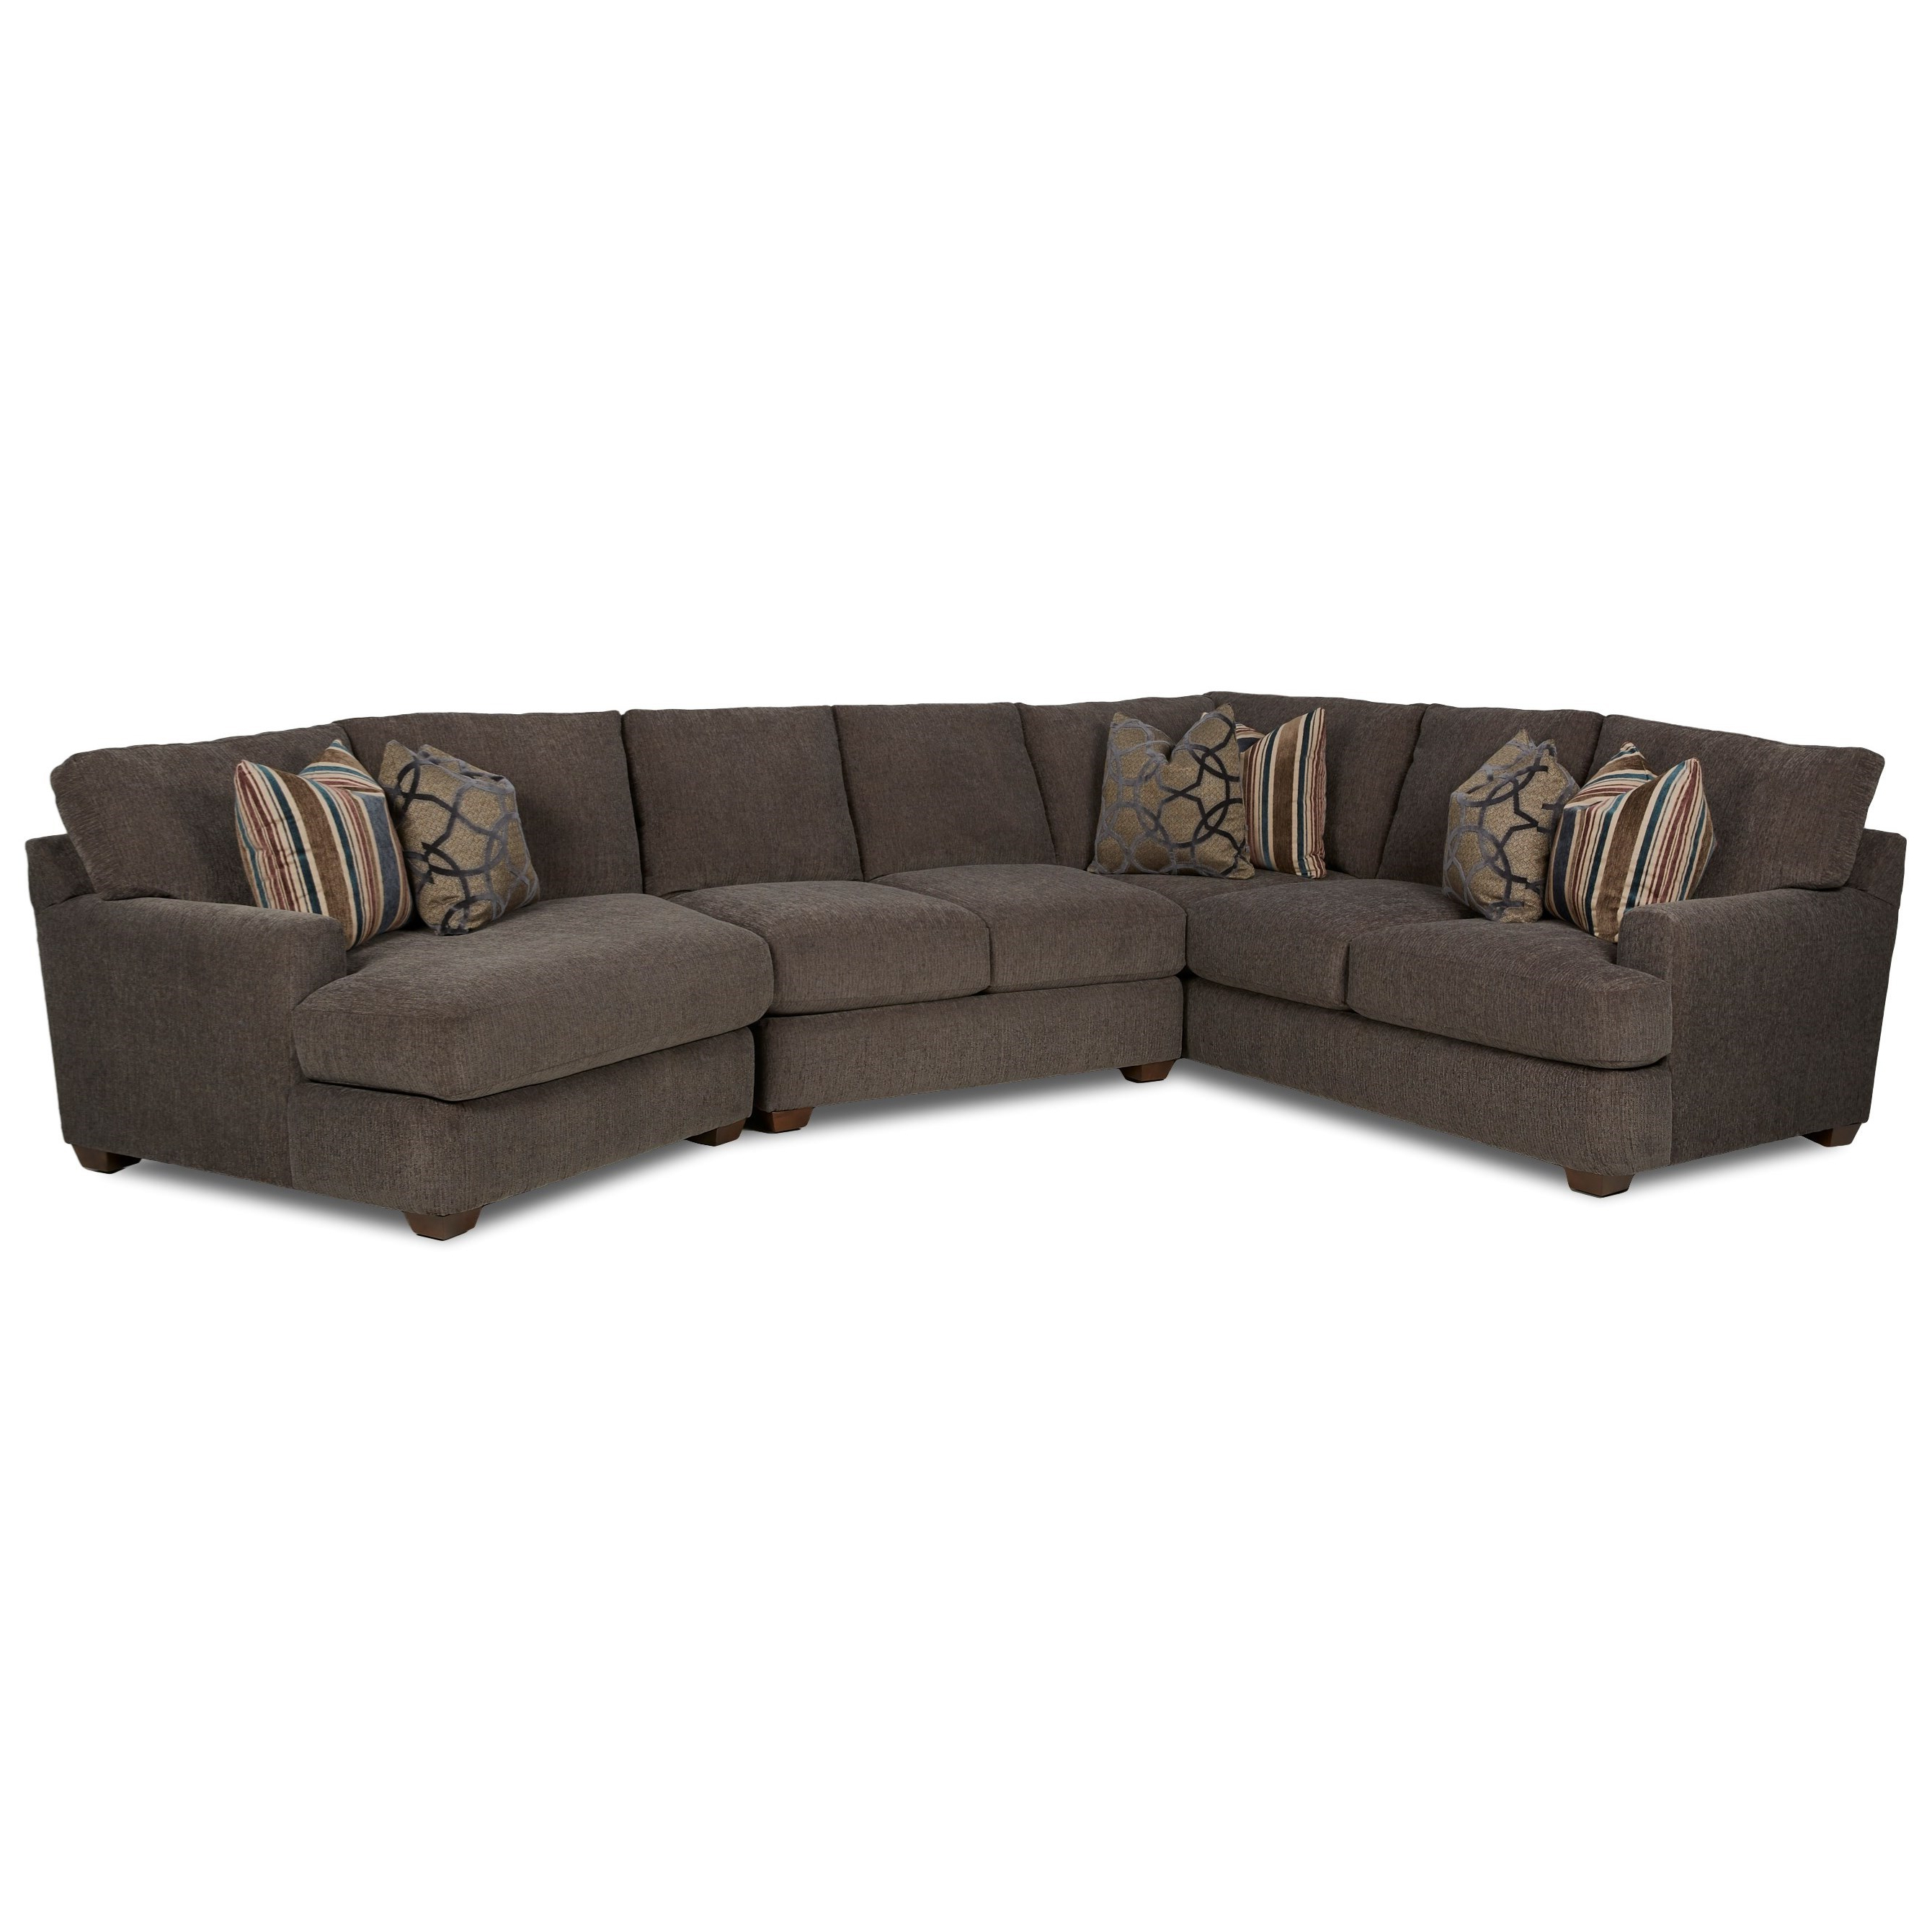 Klaussner Haynes Three Piece Sectional Sofa With Raf Cuddler (Gallery 13 of 20)